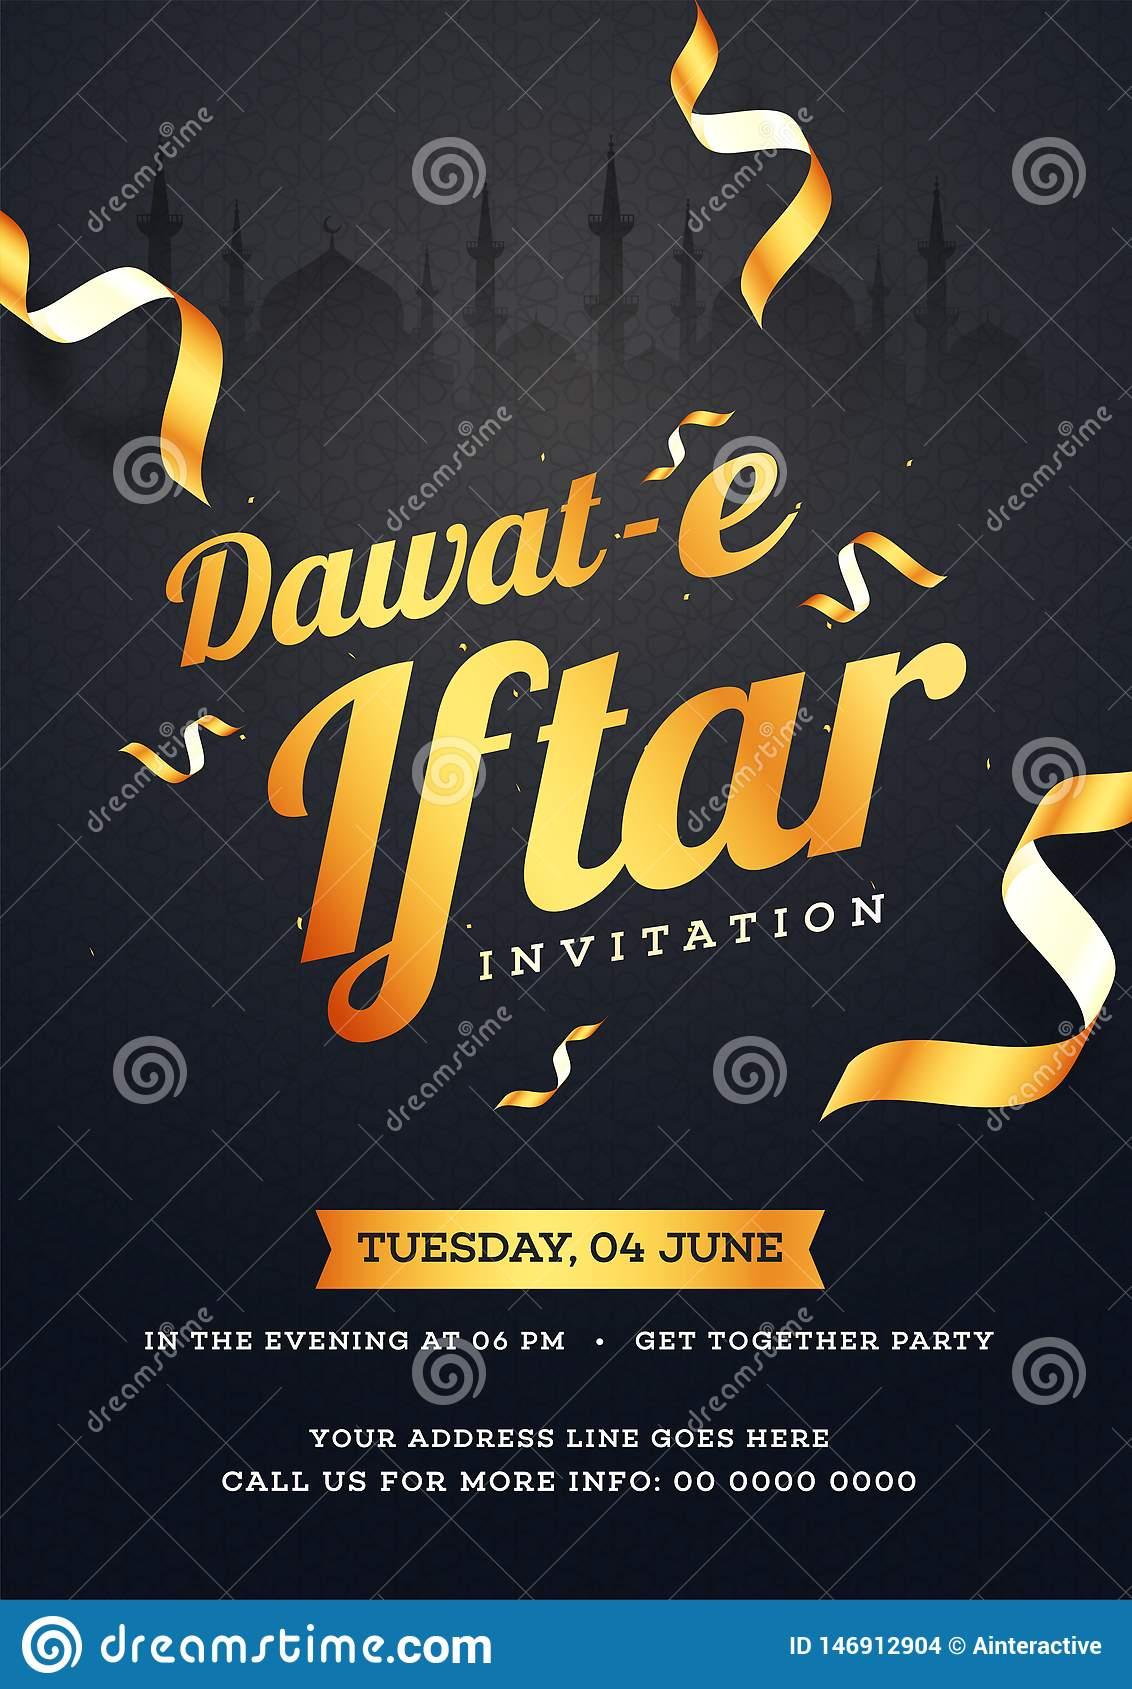 Dawat E Iftar Invitation Card Design With Date Time And